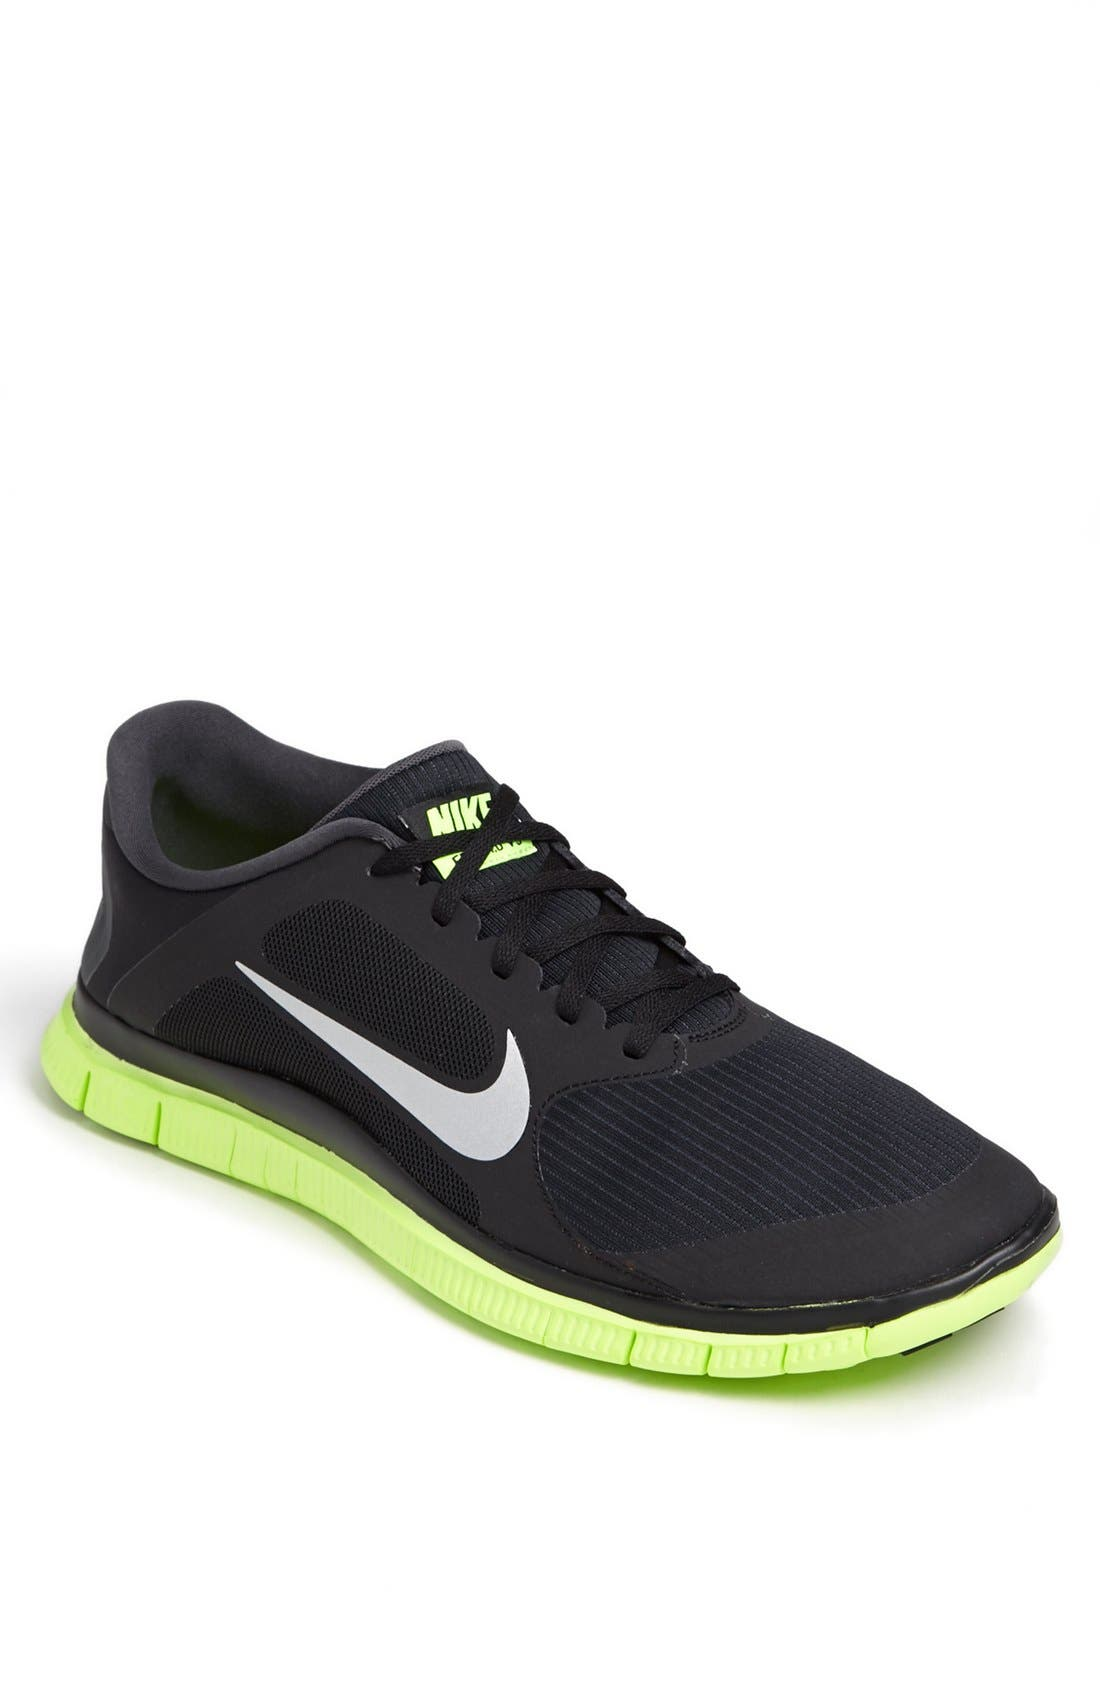 Main Image - Nike 'Free 4.0 V3' Running Shoe (Men)